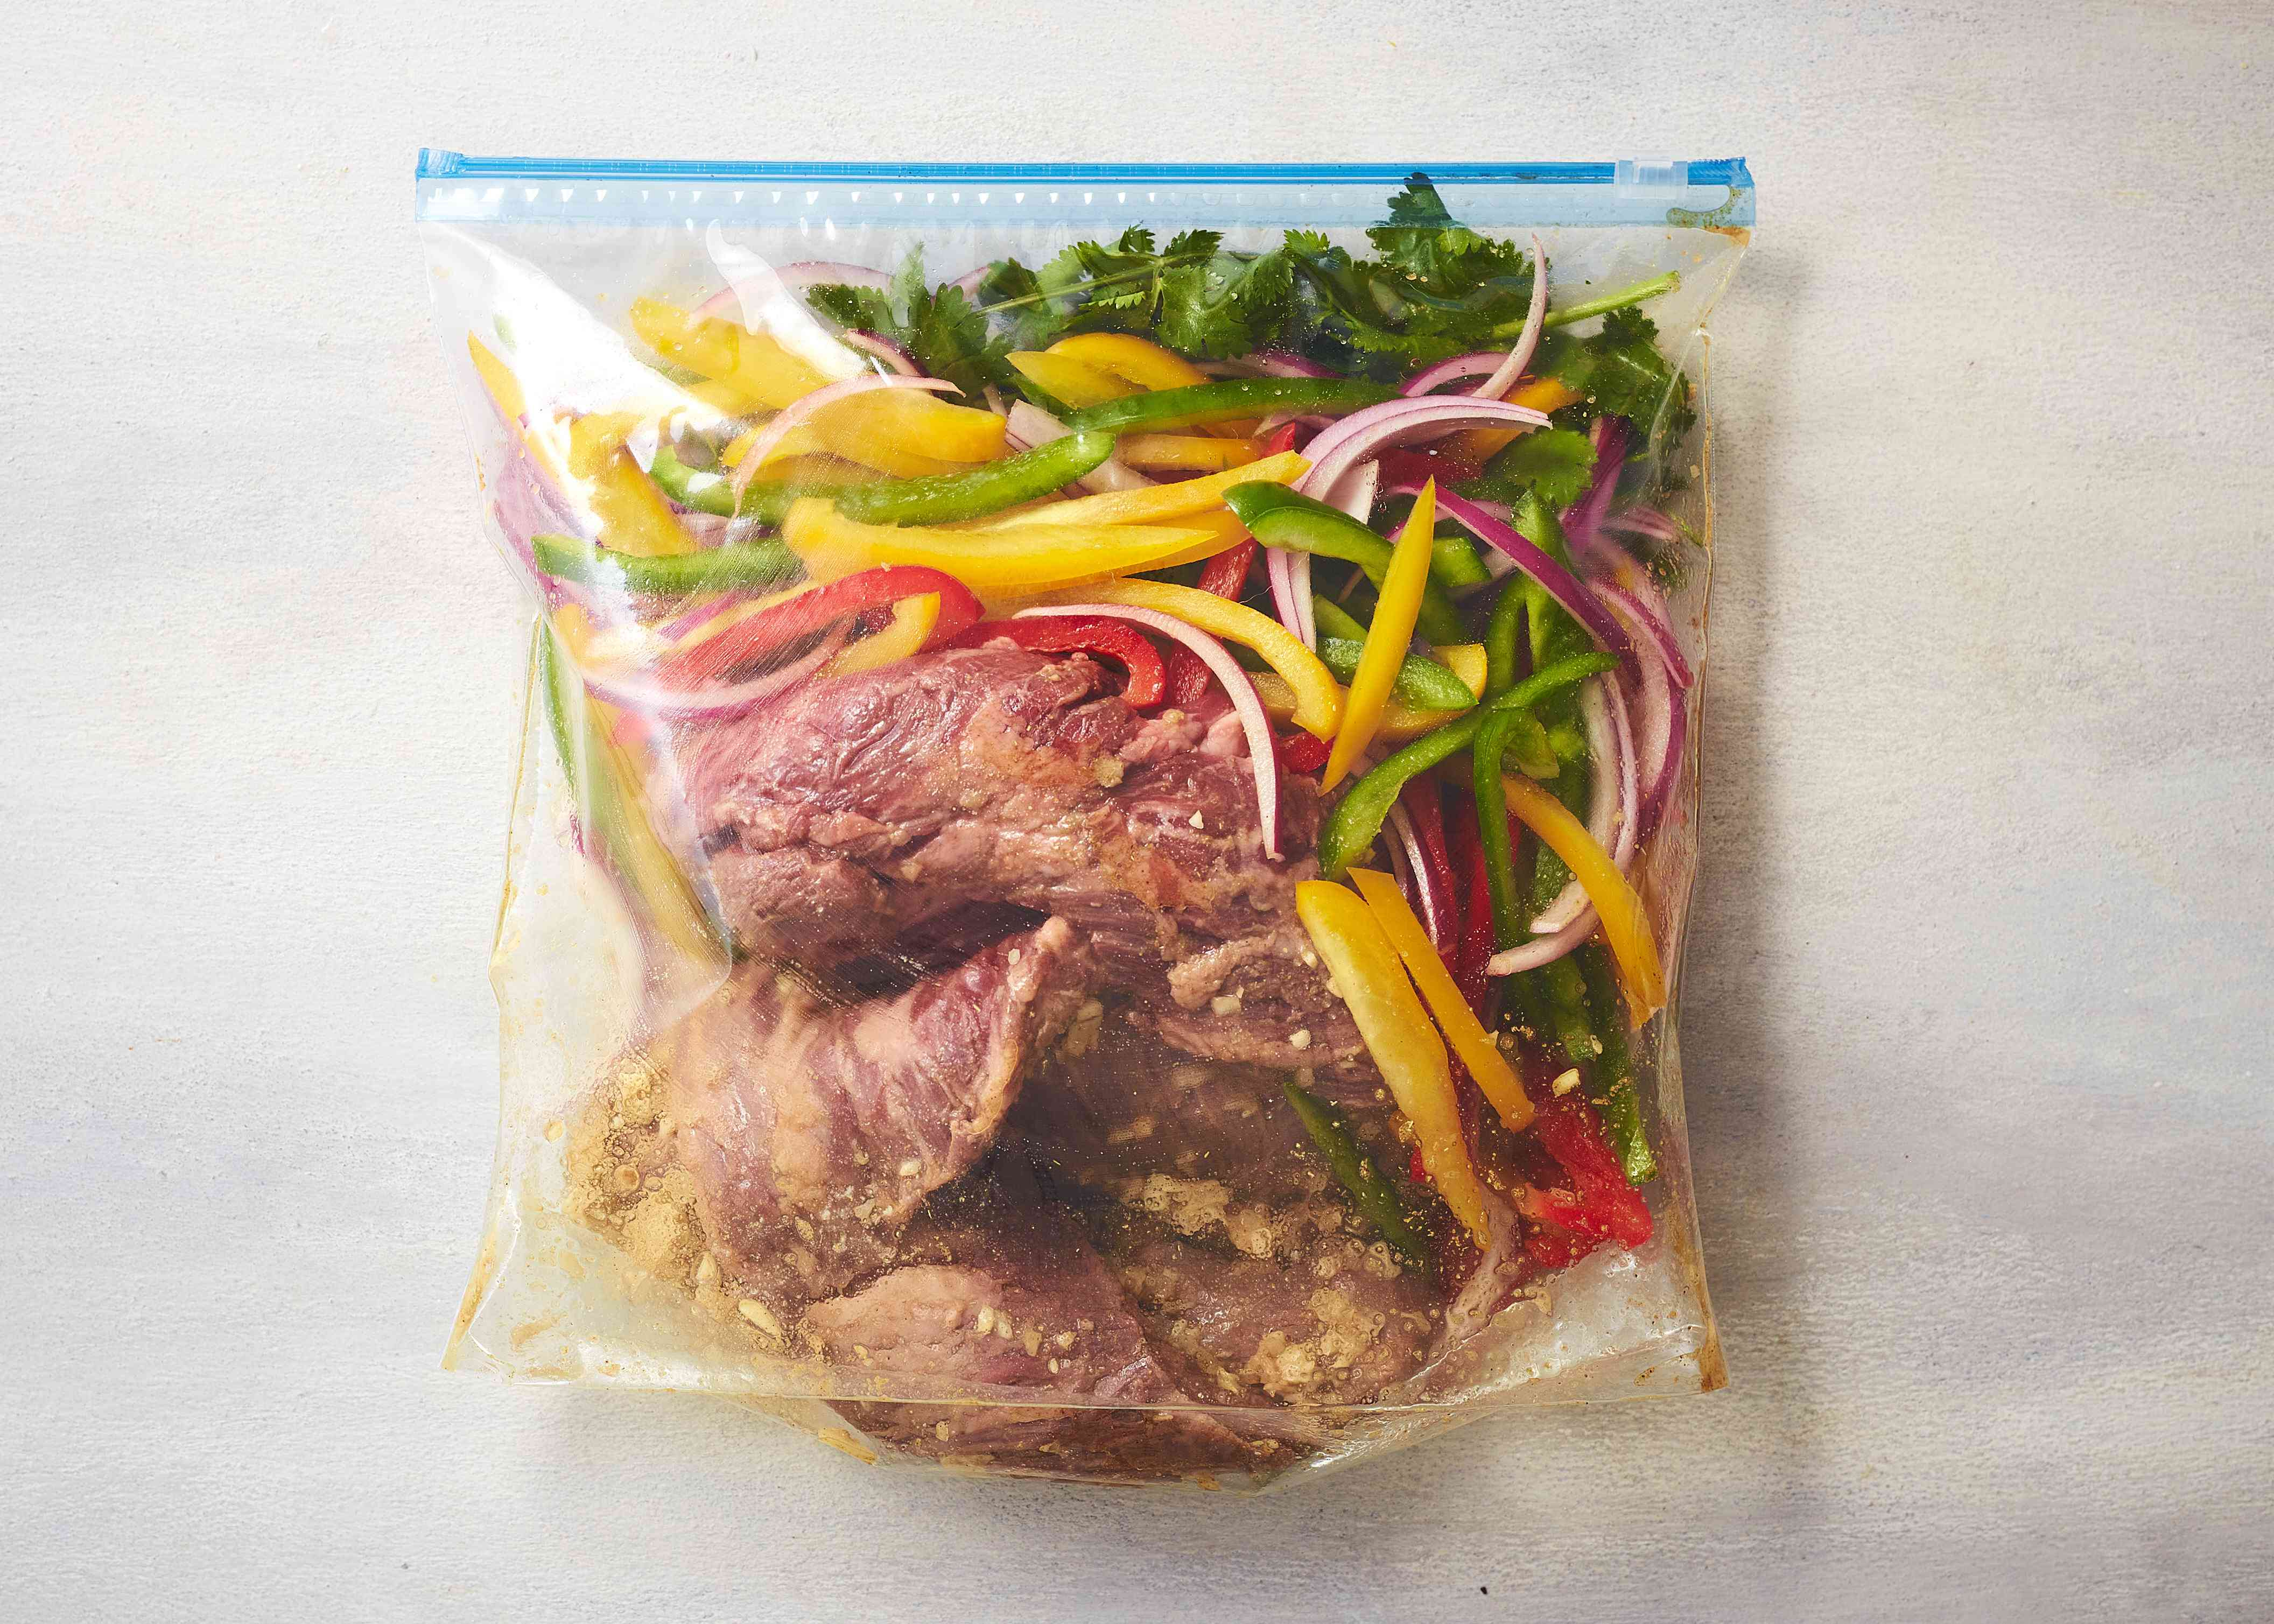 Place the skirt steak, bell peppers, onion, and cilantro sprigs into the bag with the marinade